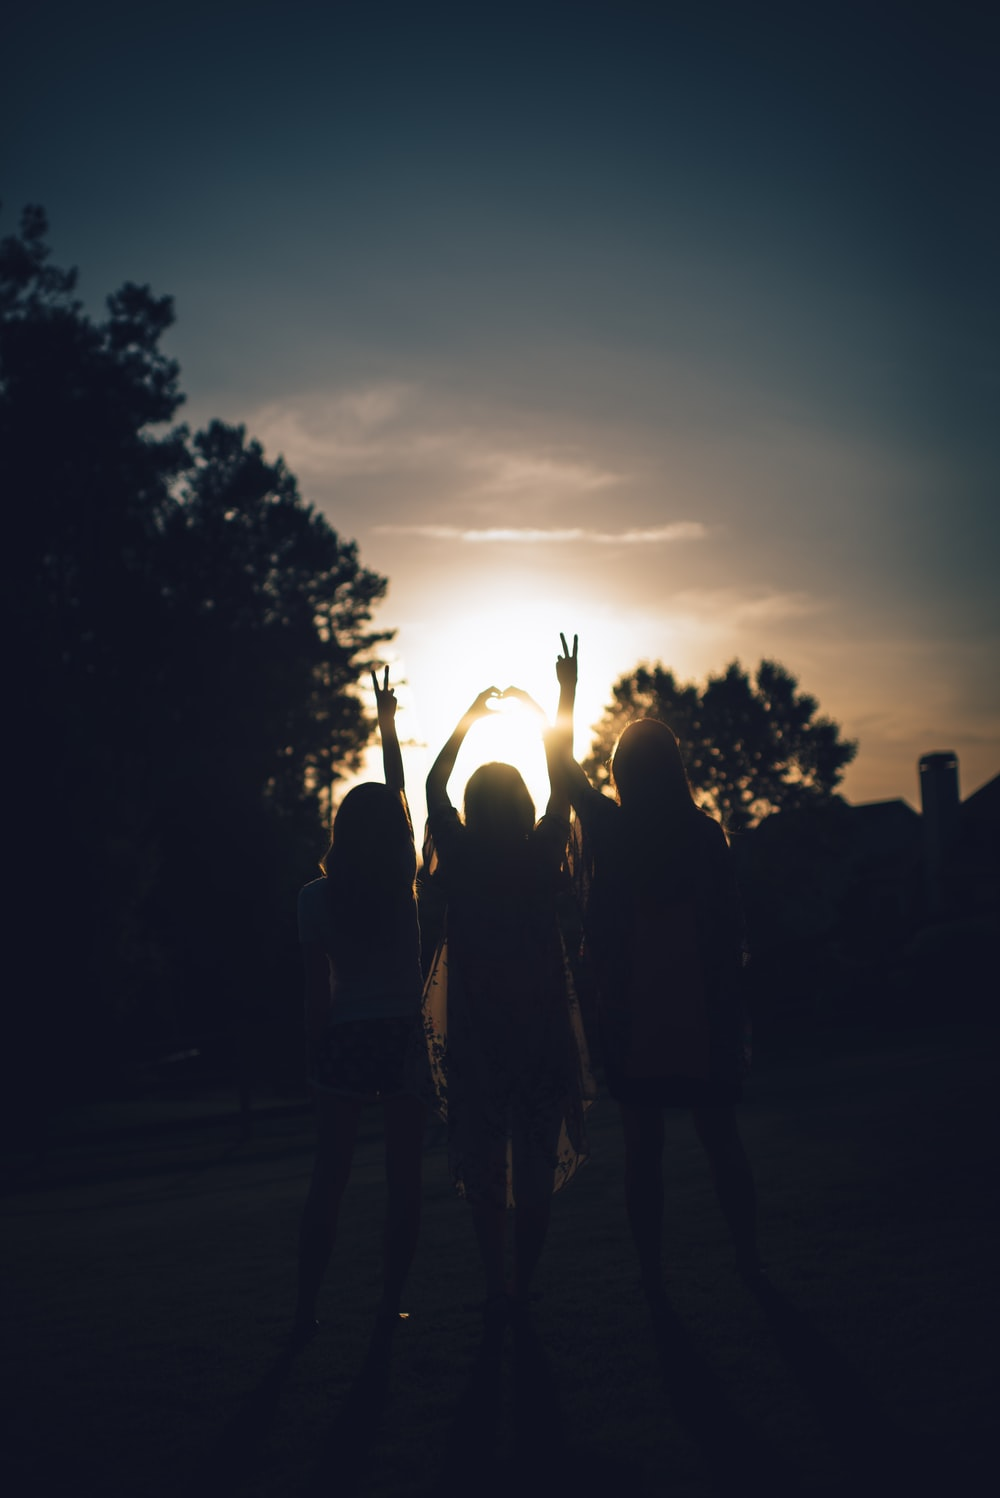 silhouette of three women during daytime